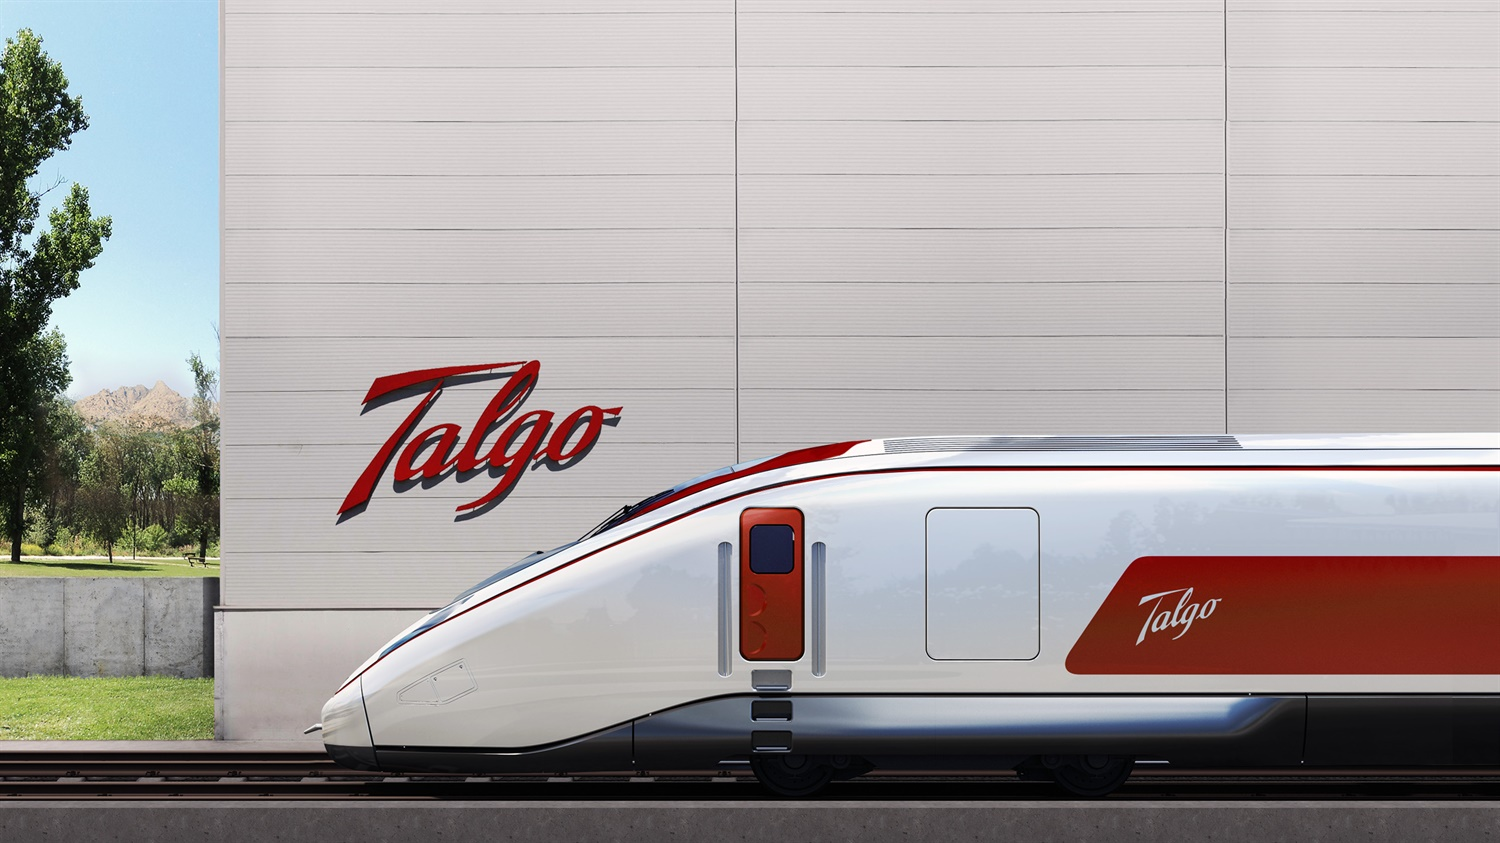 Talgo launches legal bid against HS2 'botched' £2.8bn train procurement